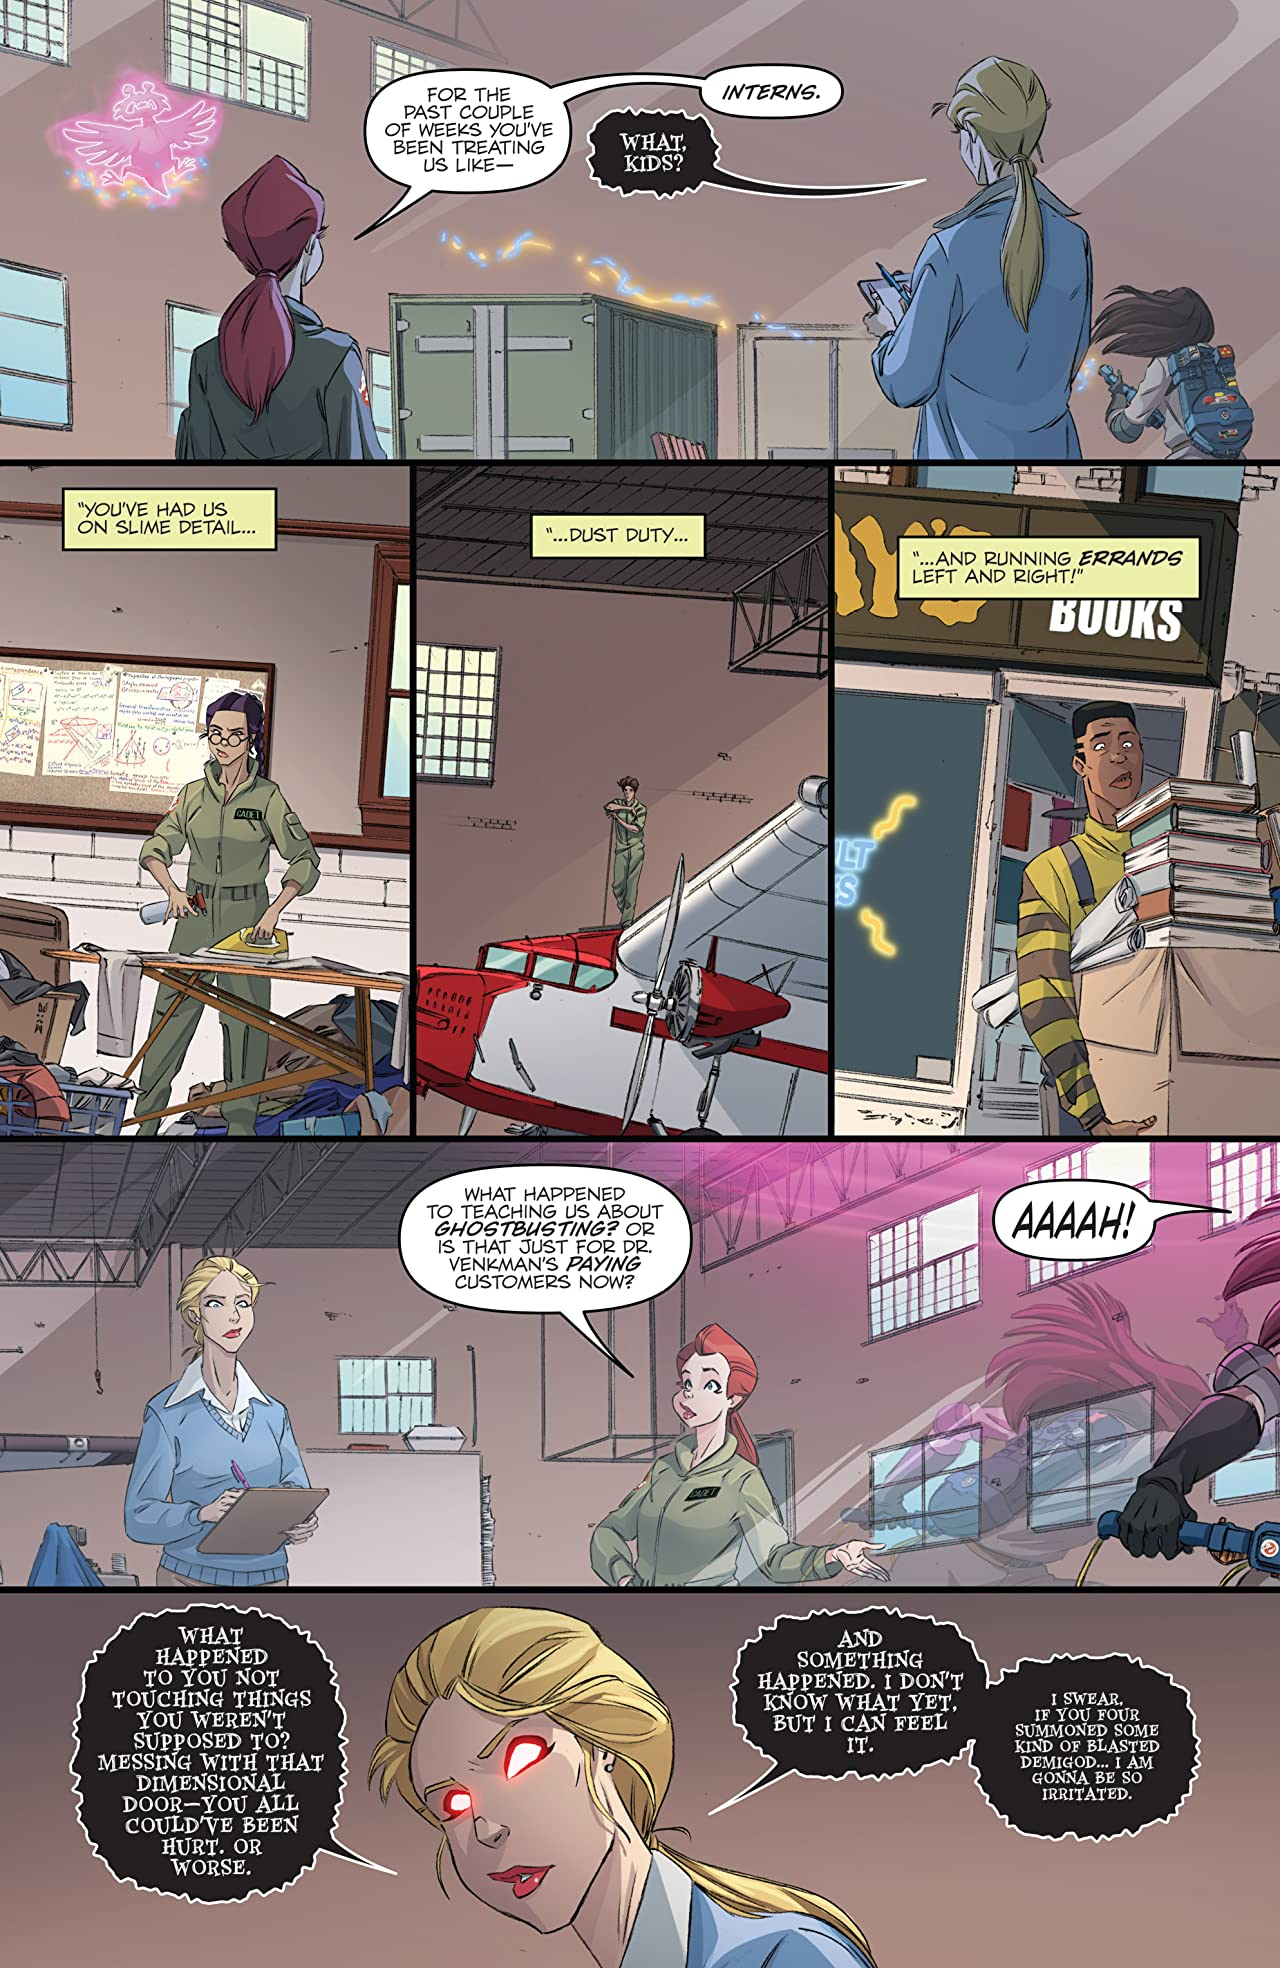 Ghostbusters 101 #3